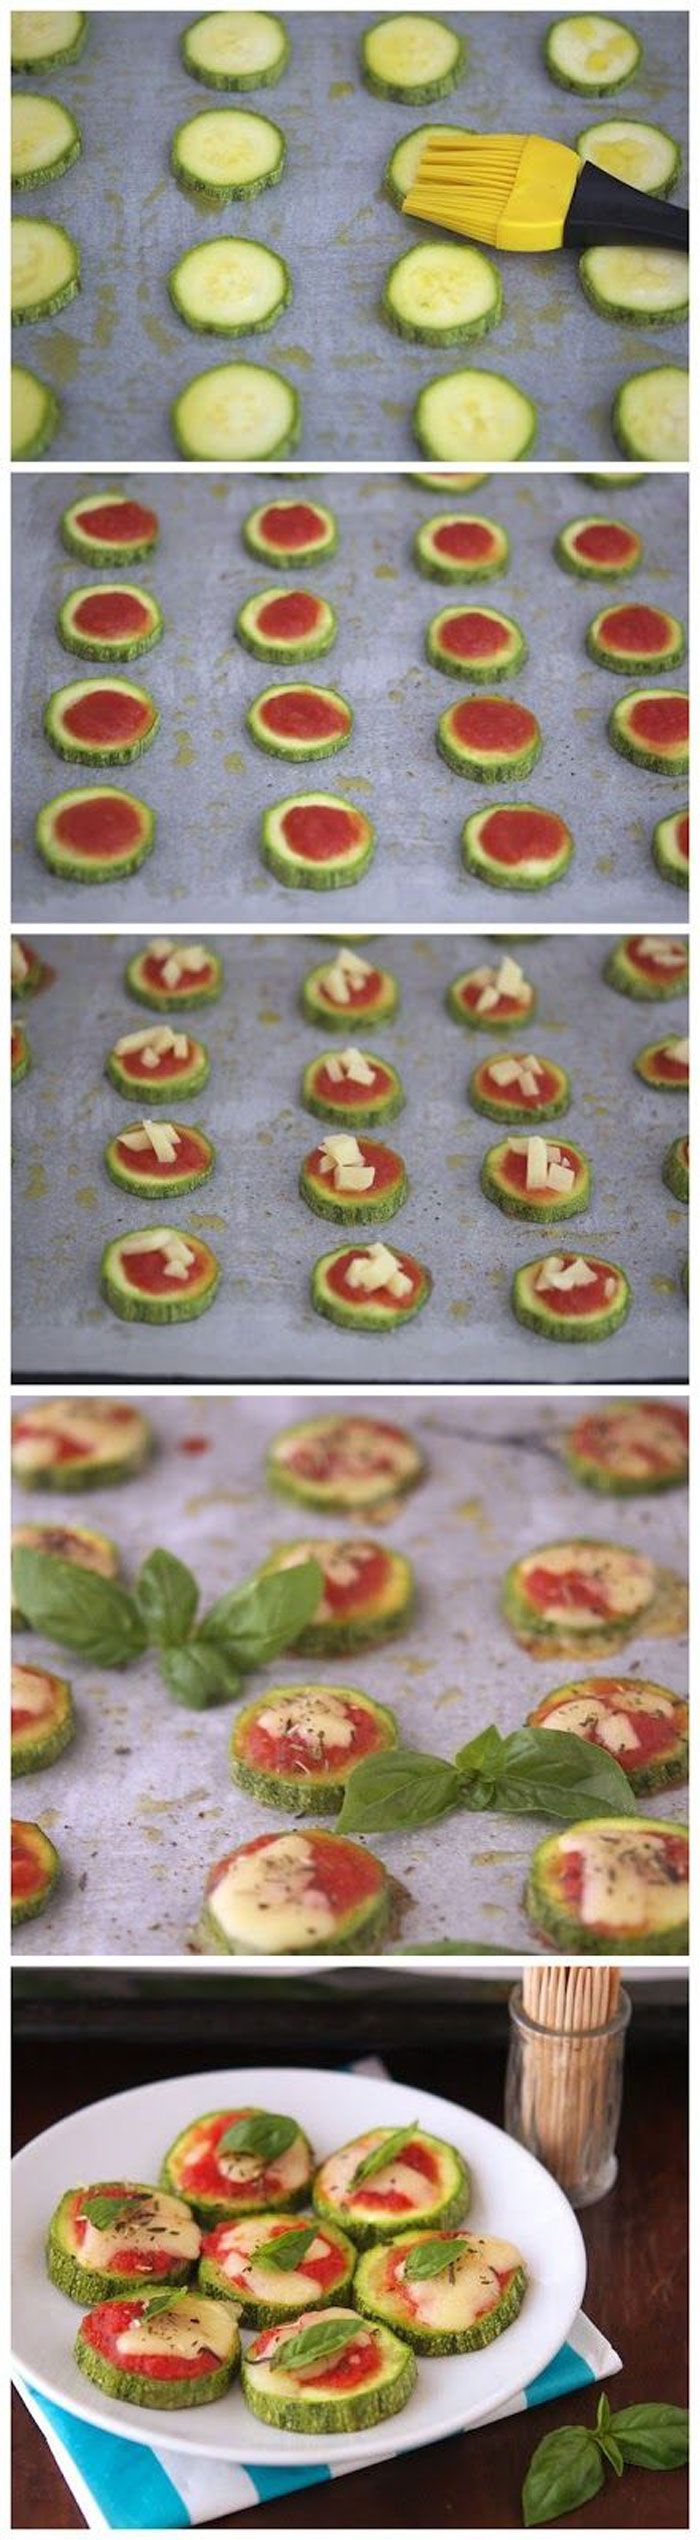 Mini pizza de abobrinha